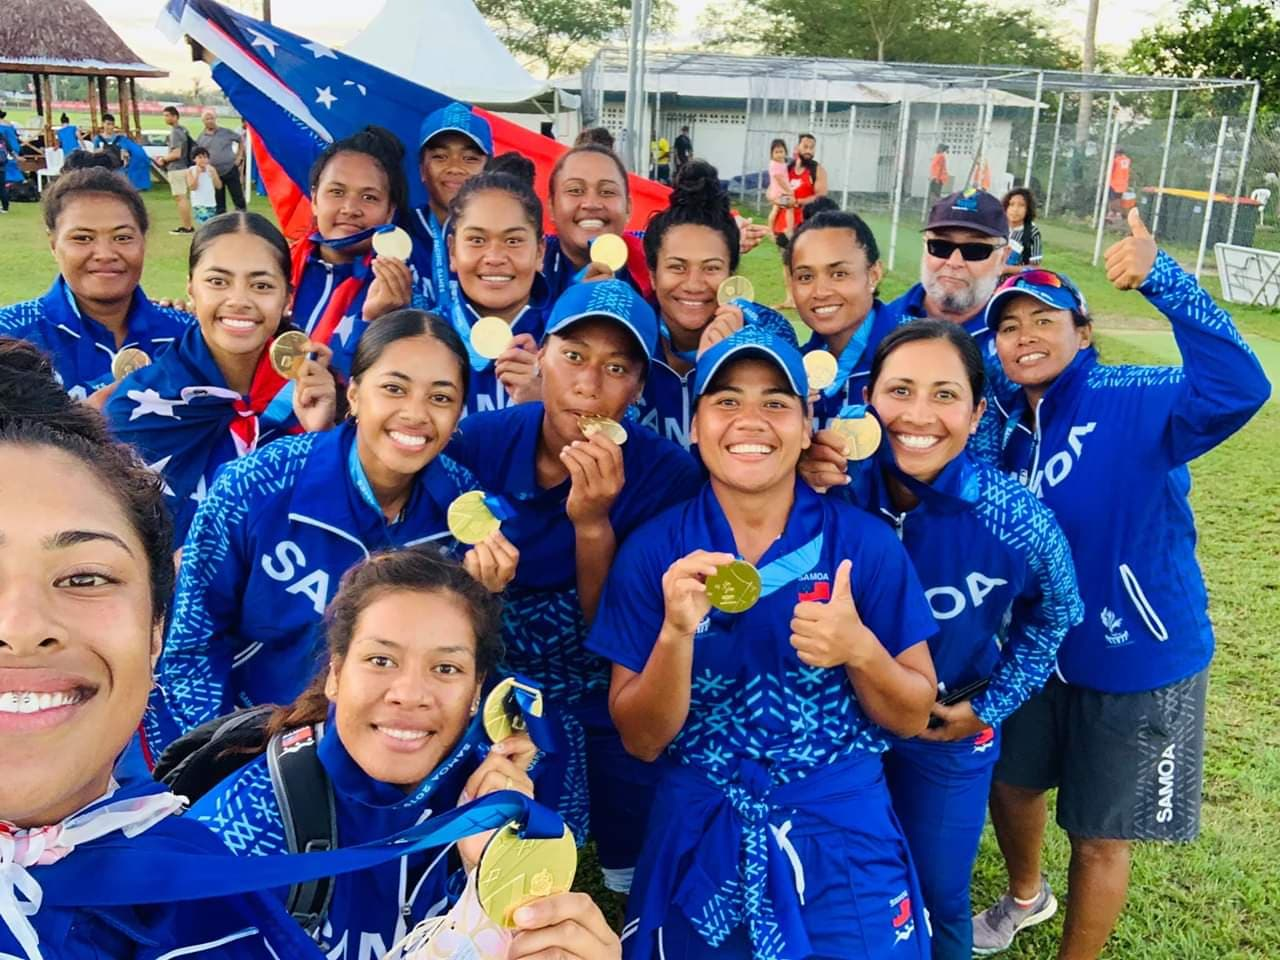 Club AGM this Sunday & Congrats to our Samoan Reps who Won Gold at Pacific Games!